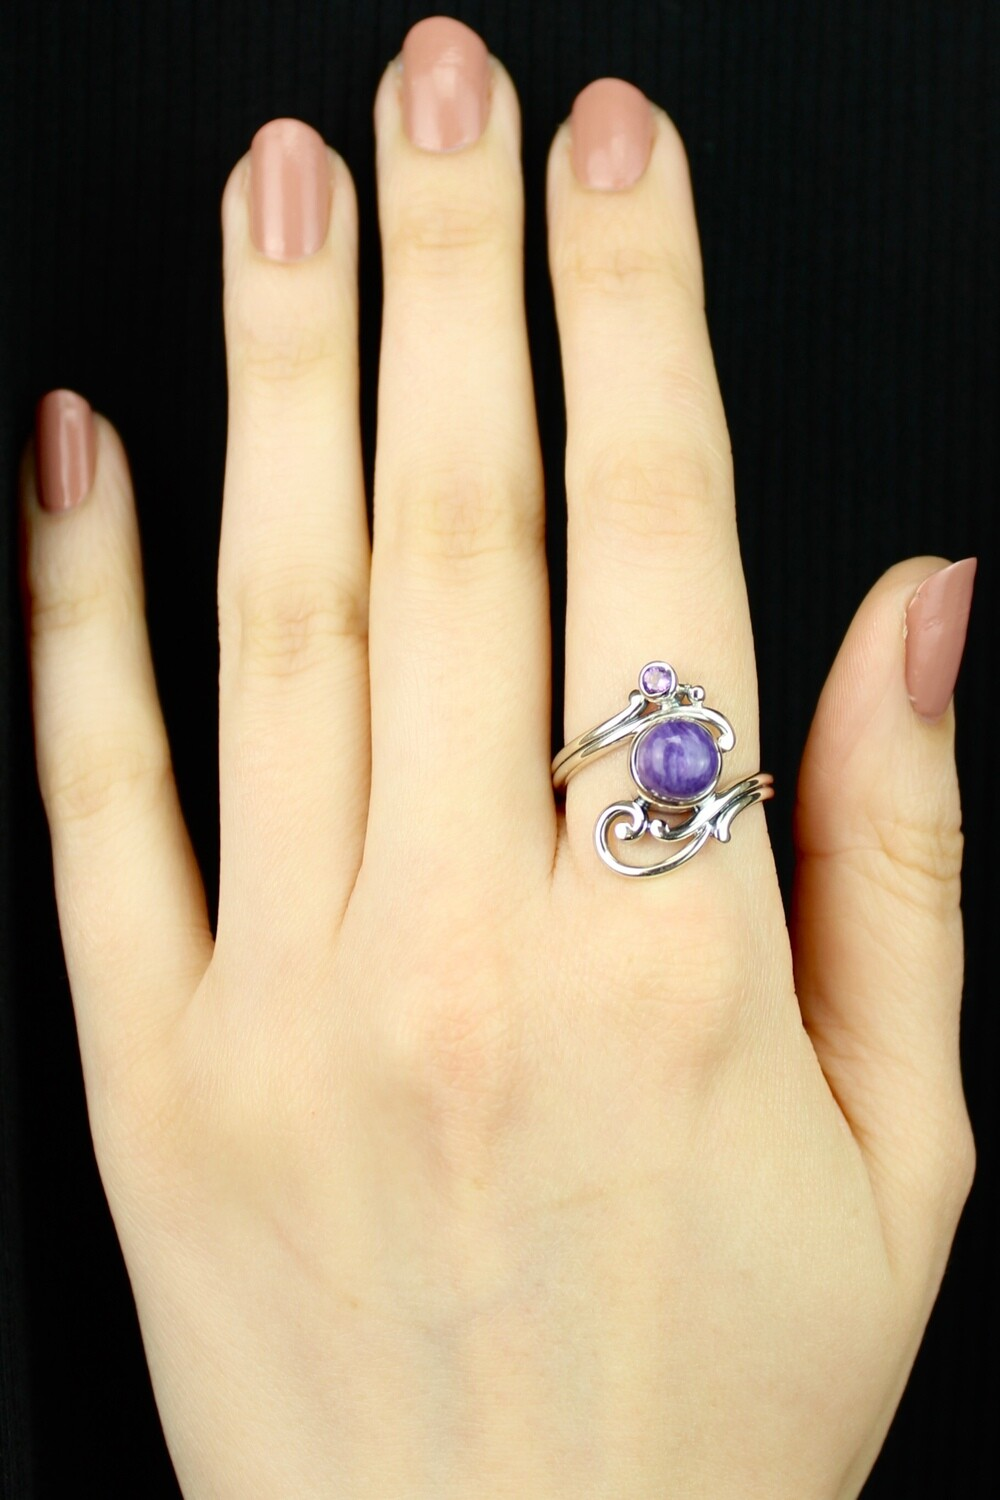 SIZE 9 - Sterling Silver Charoite & Amethyst Ring - RIG9116